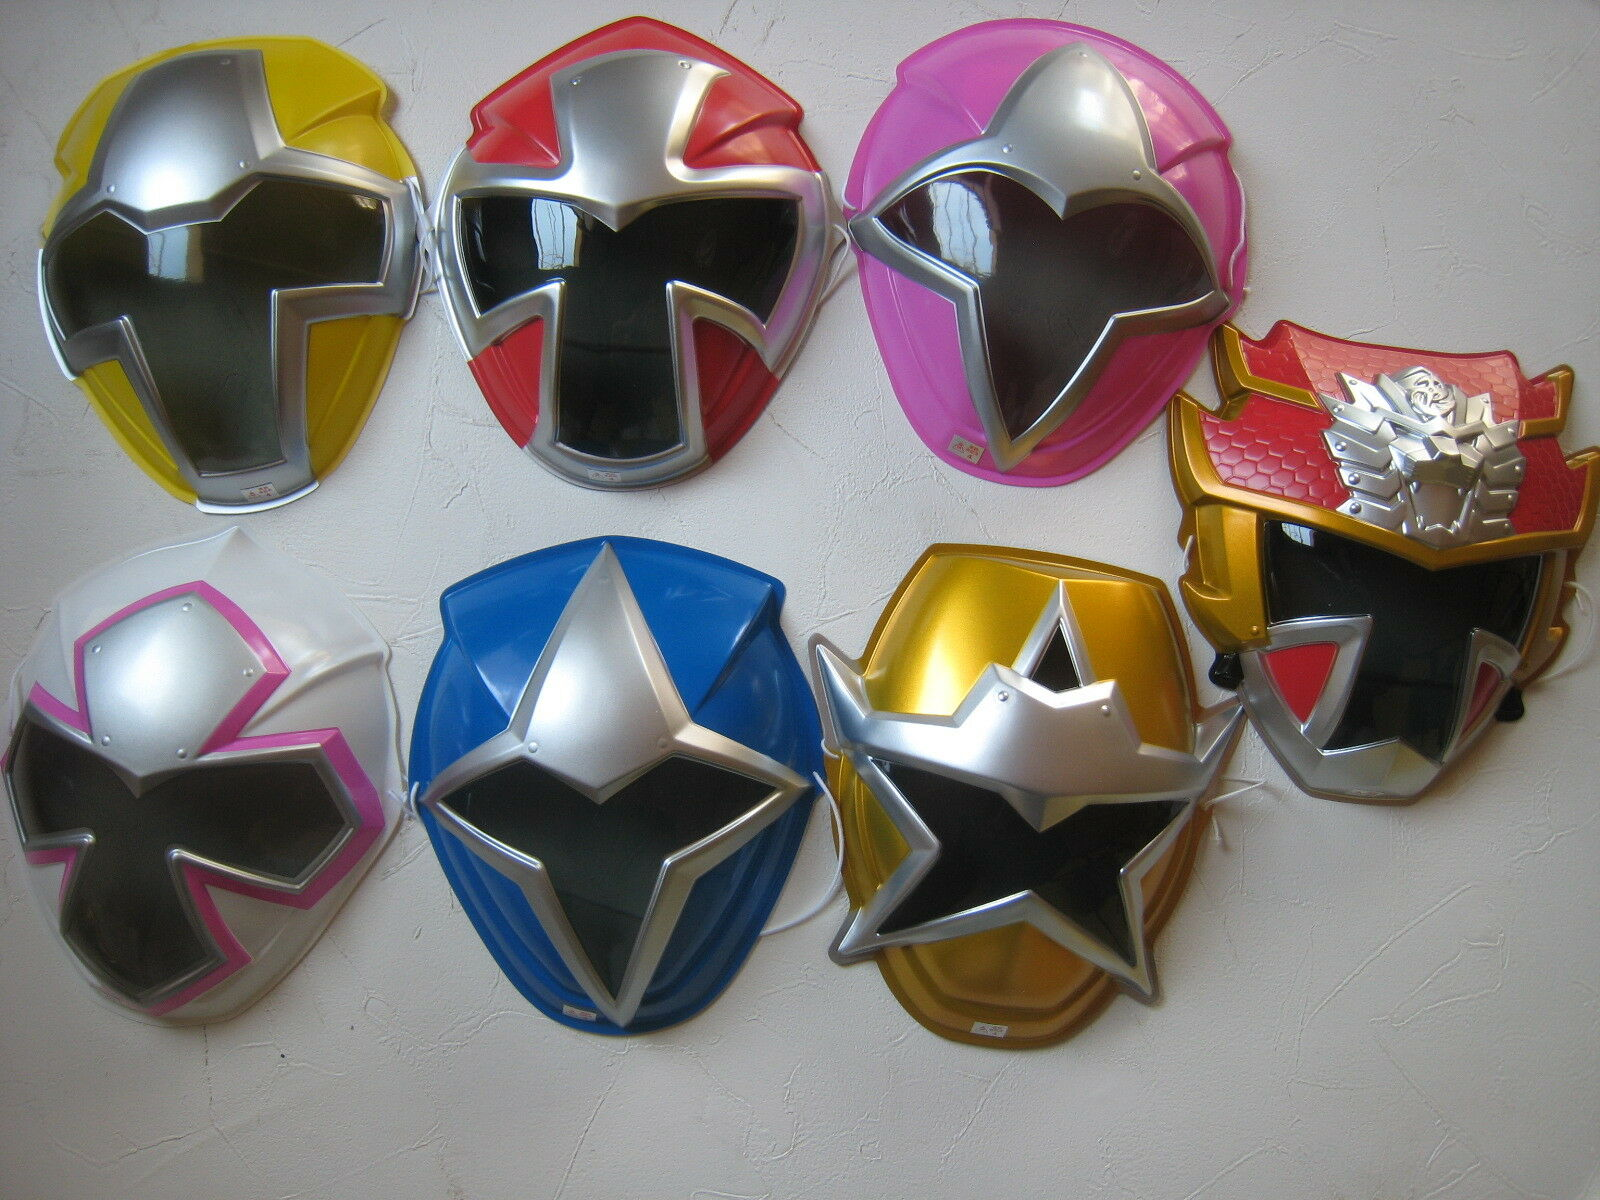 Power Rangers Ninja Steel set of 7 PVC play face mask wall decor pretend play